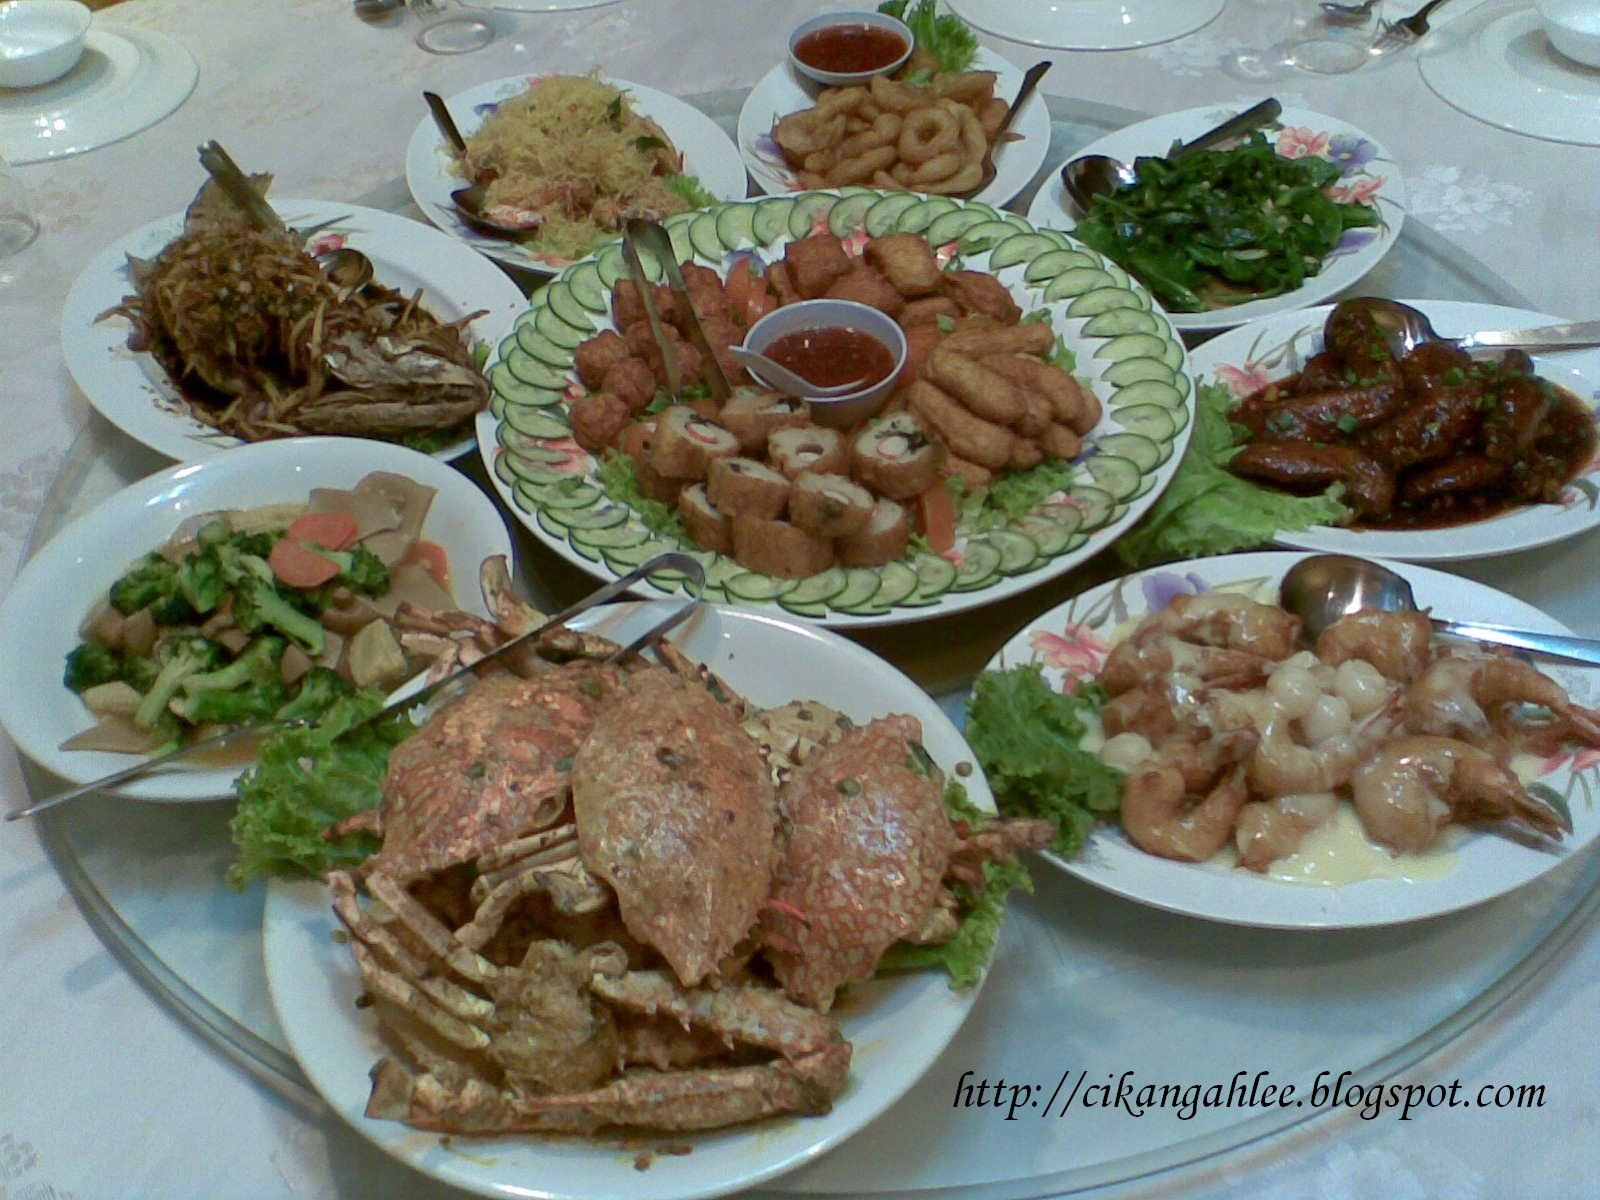 Top Halal Chinese Restaurants In Kl Selangor Food Halal Chinese Food Food Cravings